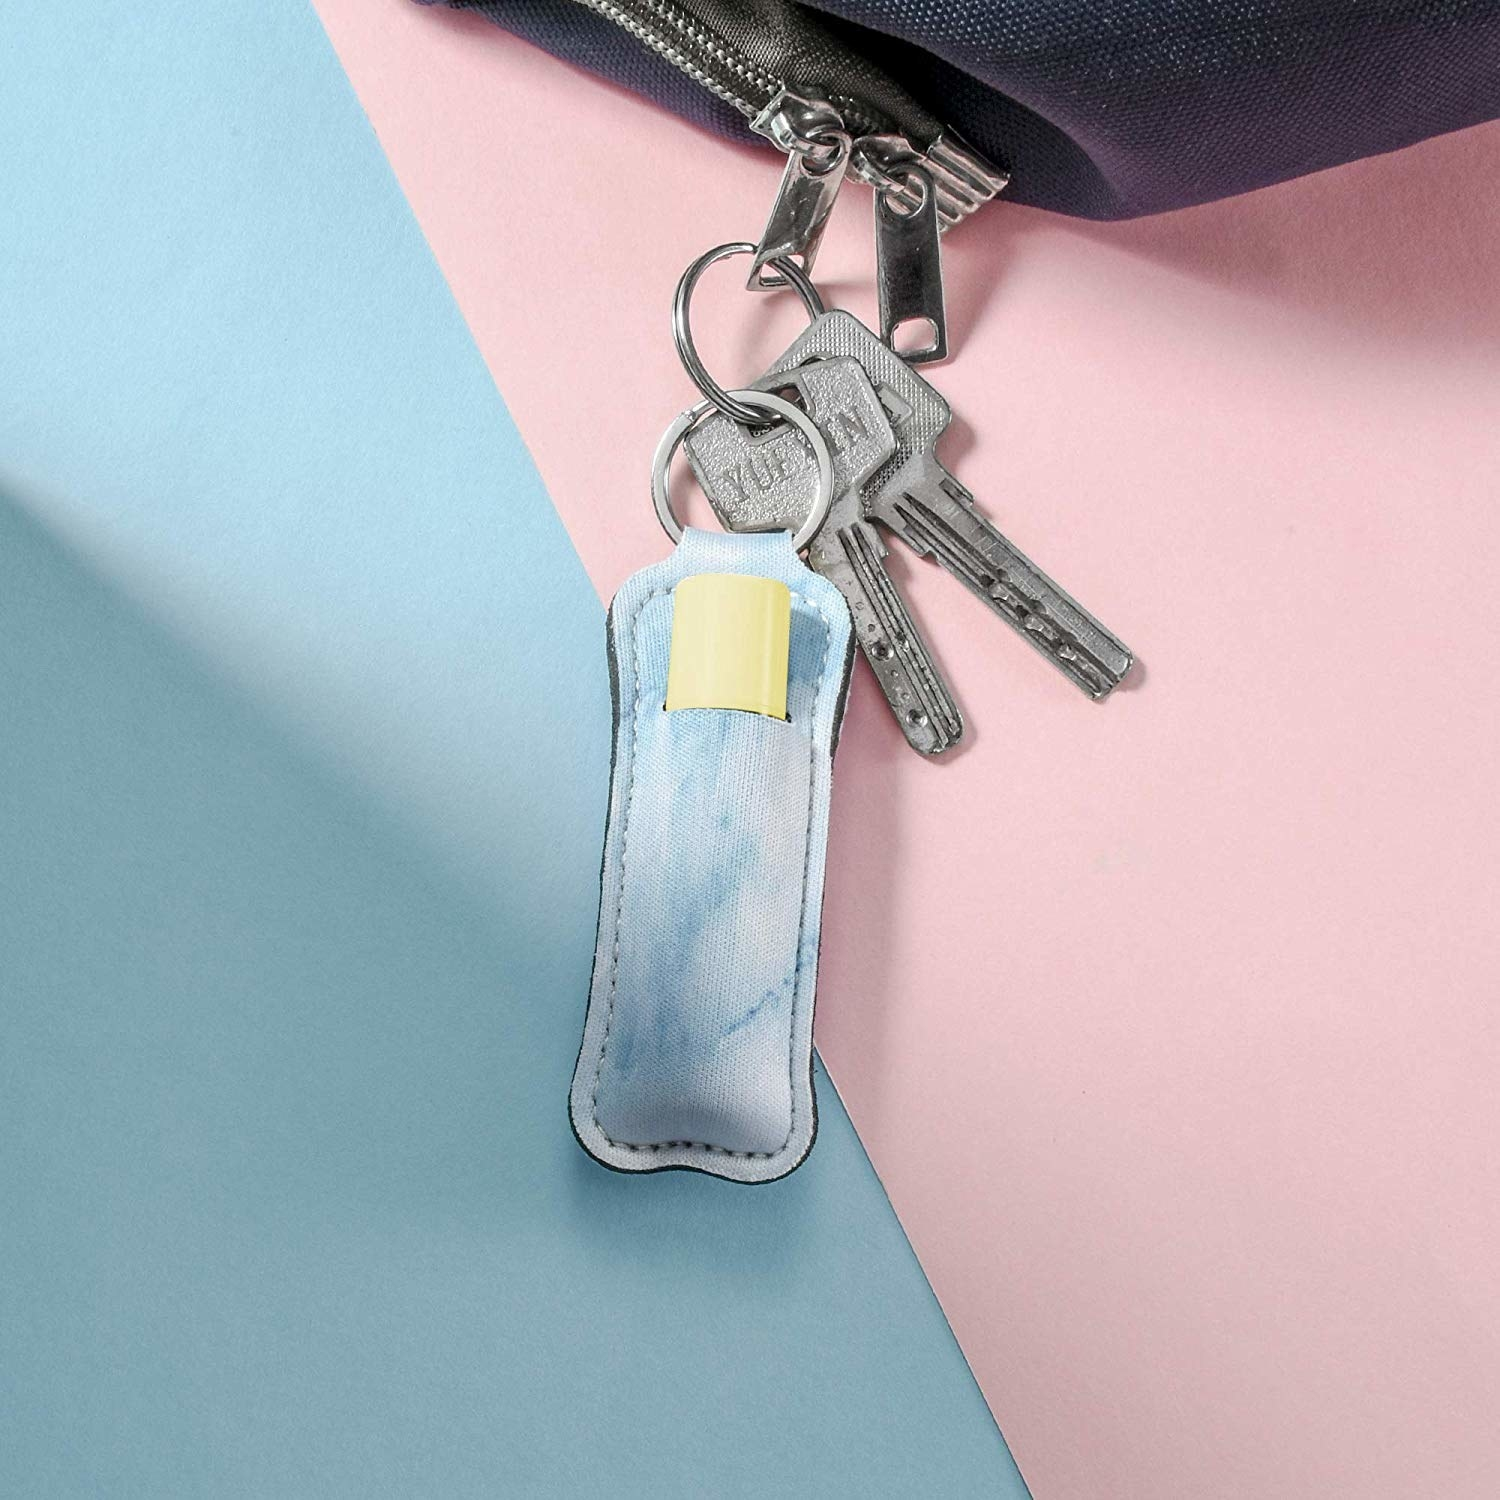 The lip balm case attached to a keyring